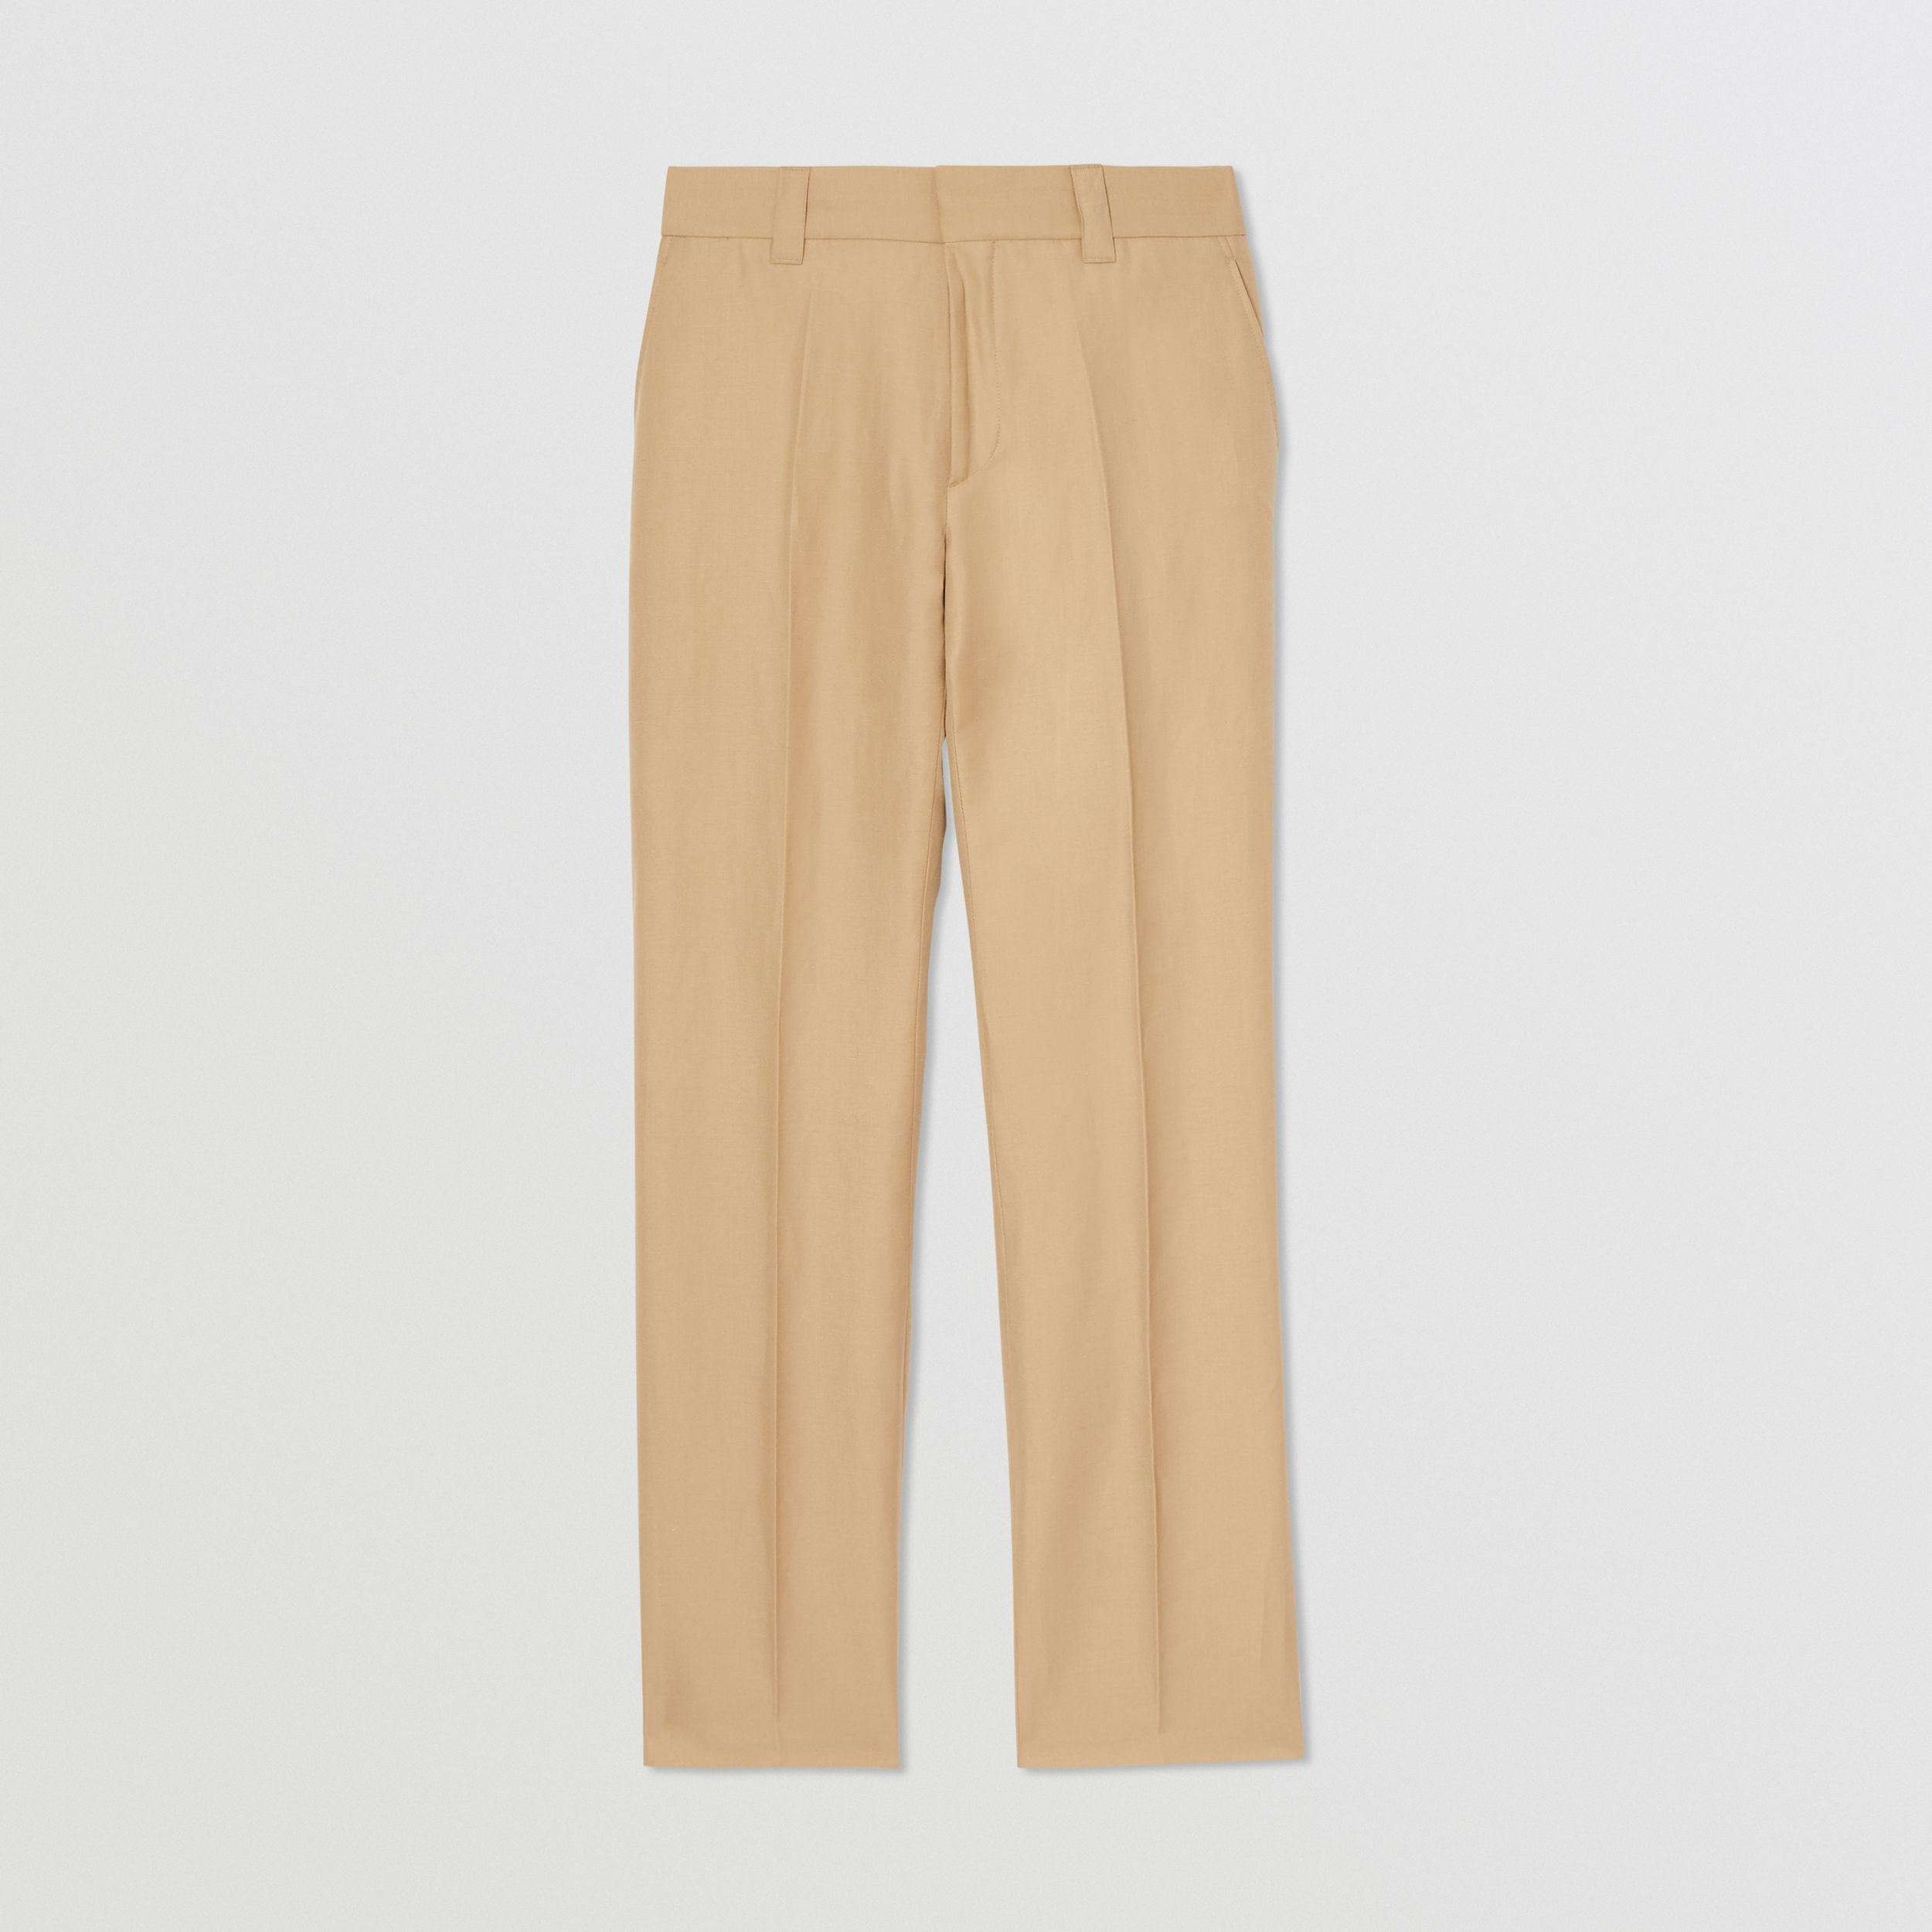 Wool Linen Cropped Tailored Trousers in Honey - Men | Burberry United States - 4